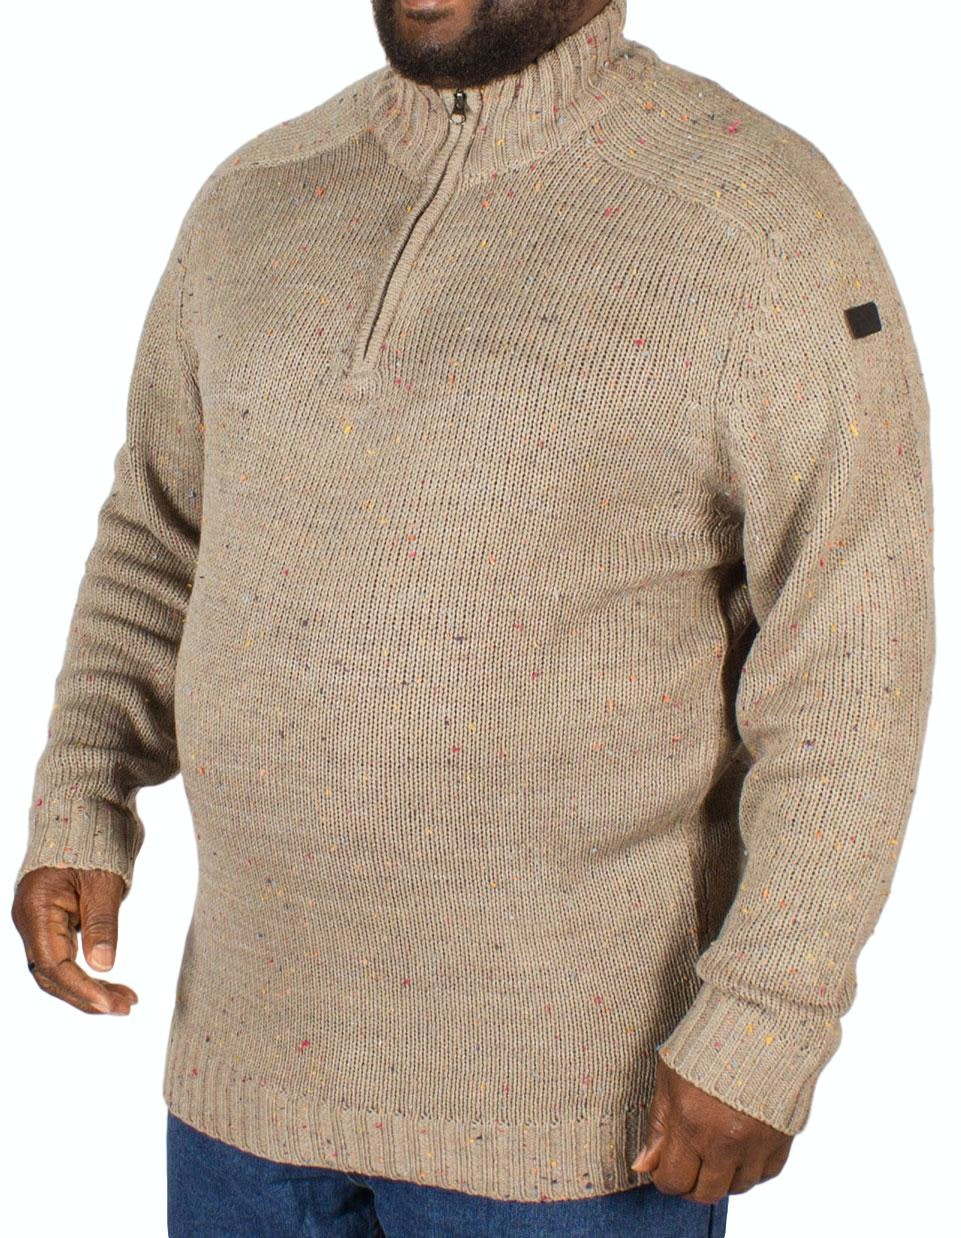 Replika Half Zip Speckled Sweater Grey